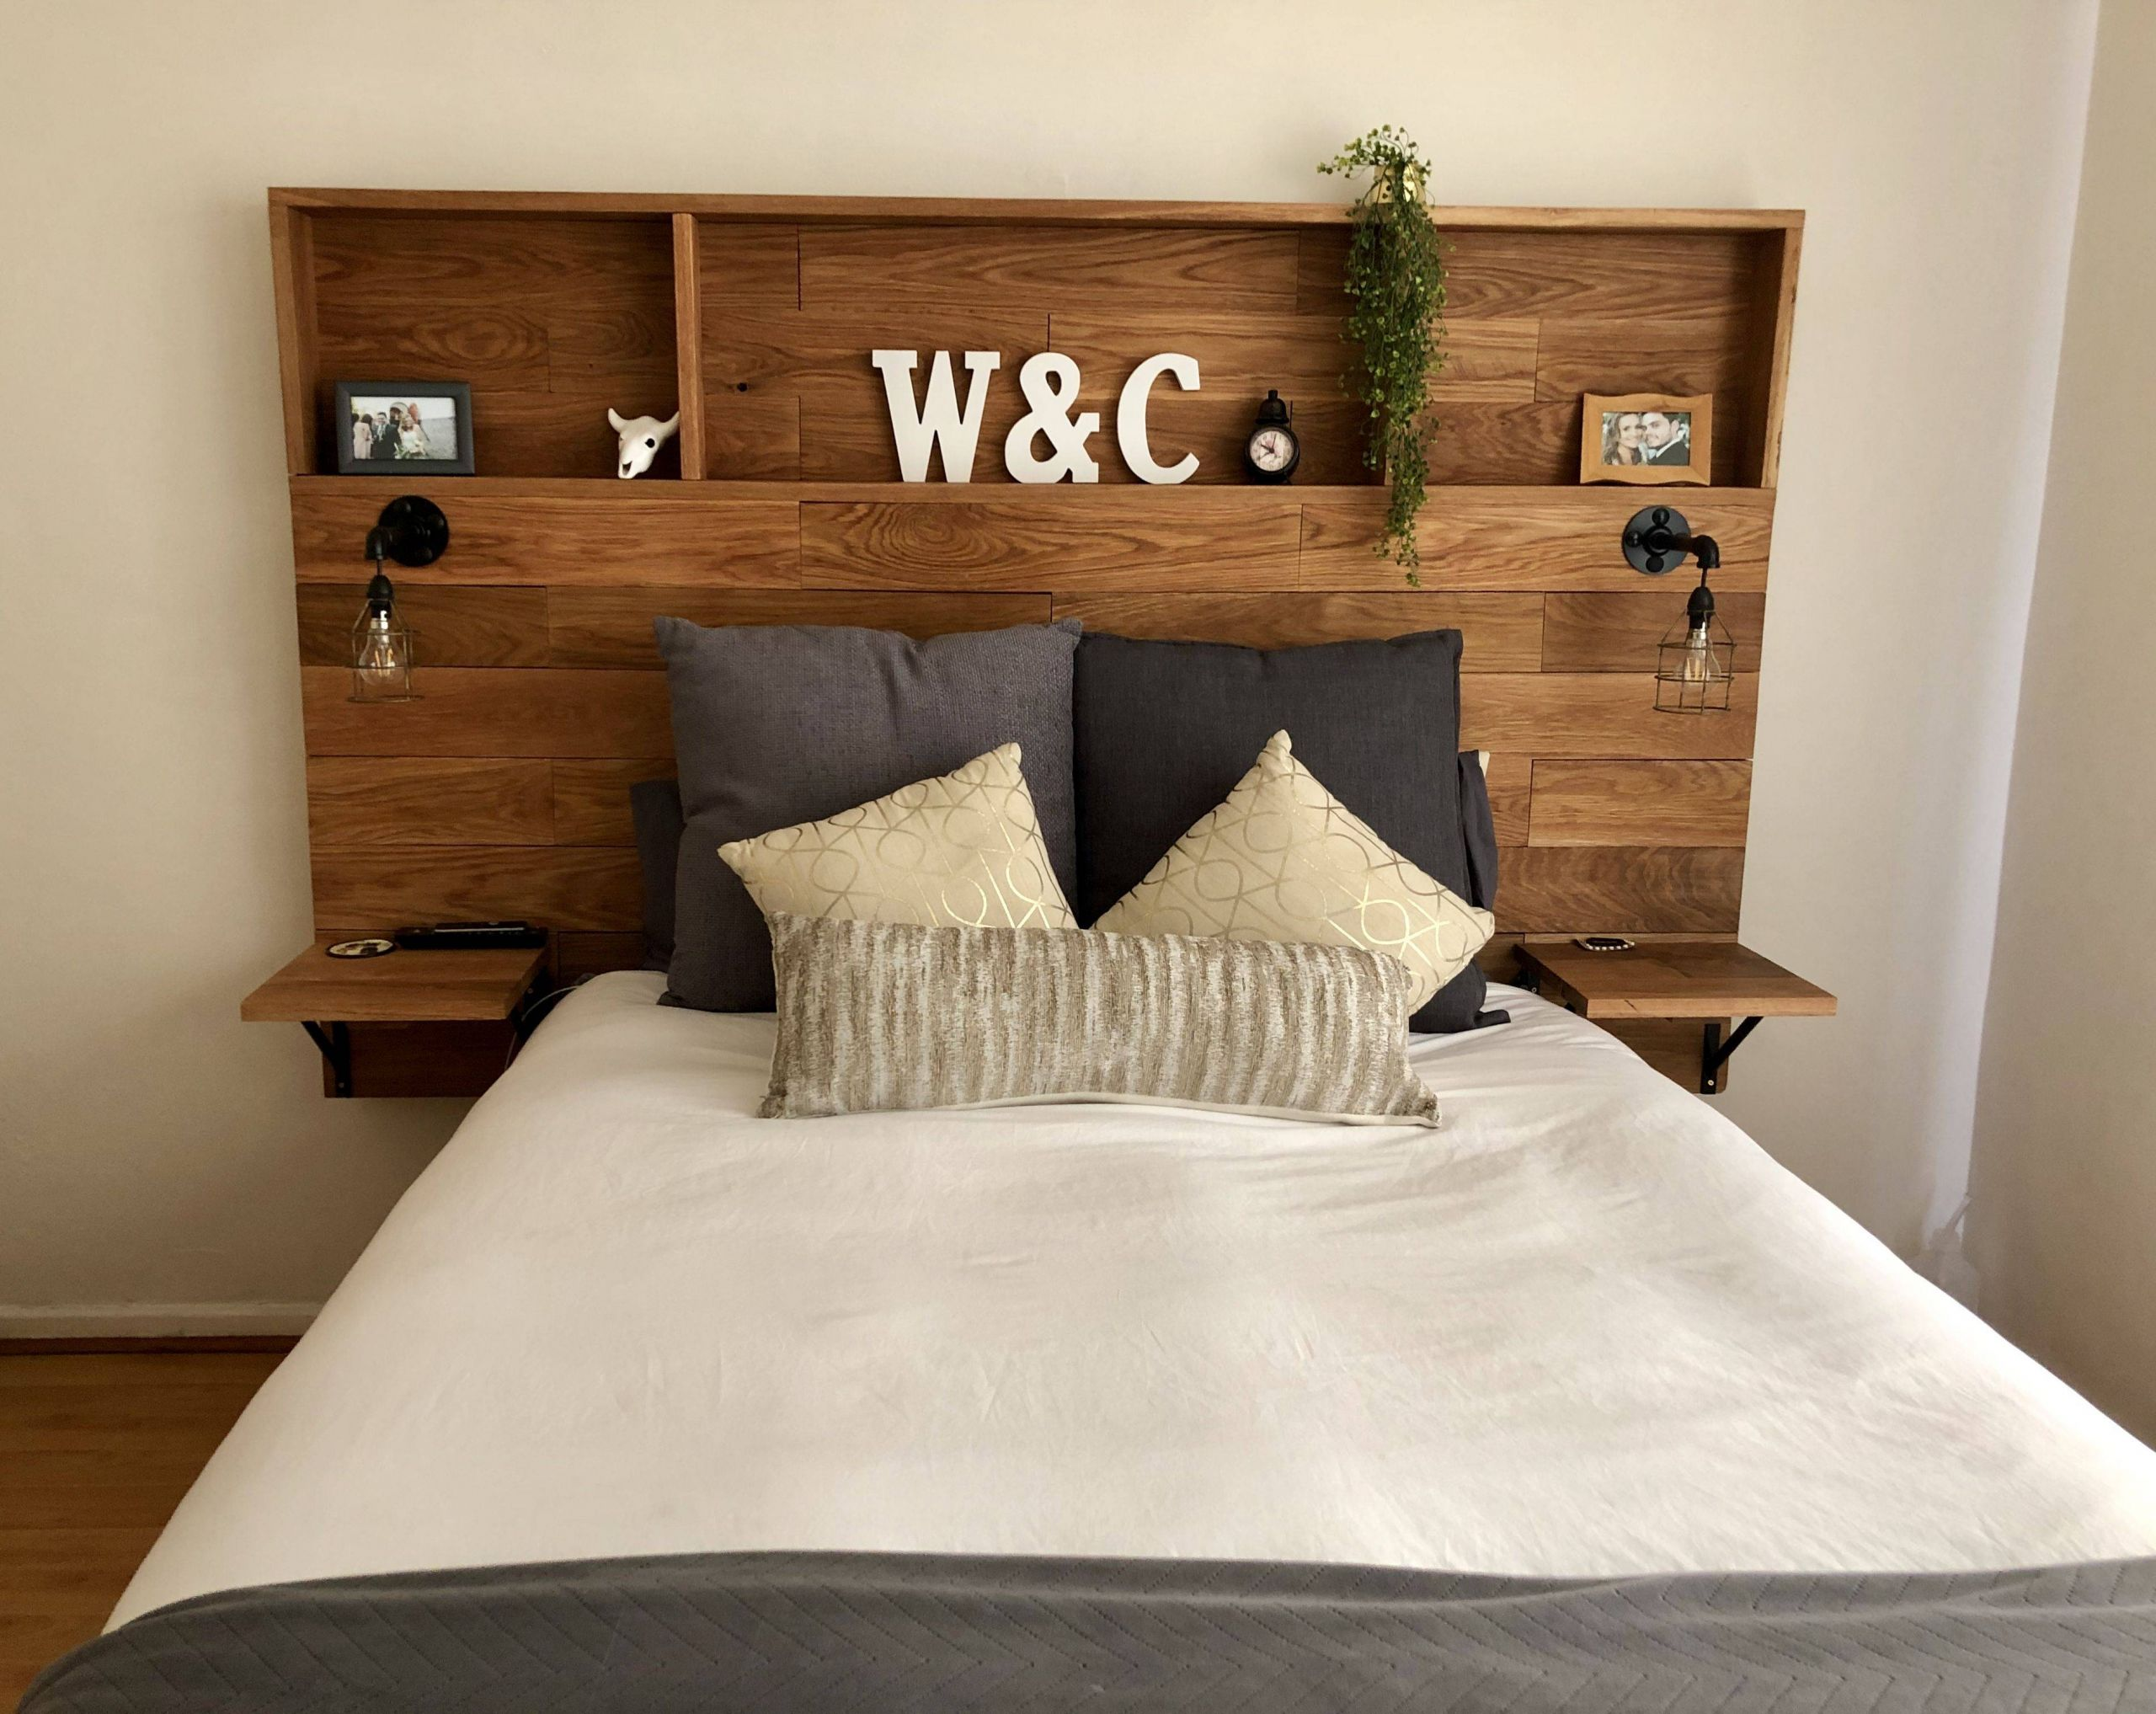 Bedroom Headboard Ideas Lovely Love This Wooden Headboard with Shelves My Husband Made for